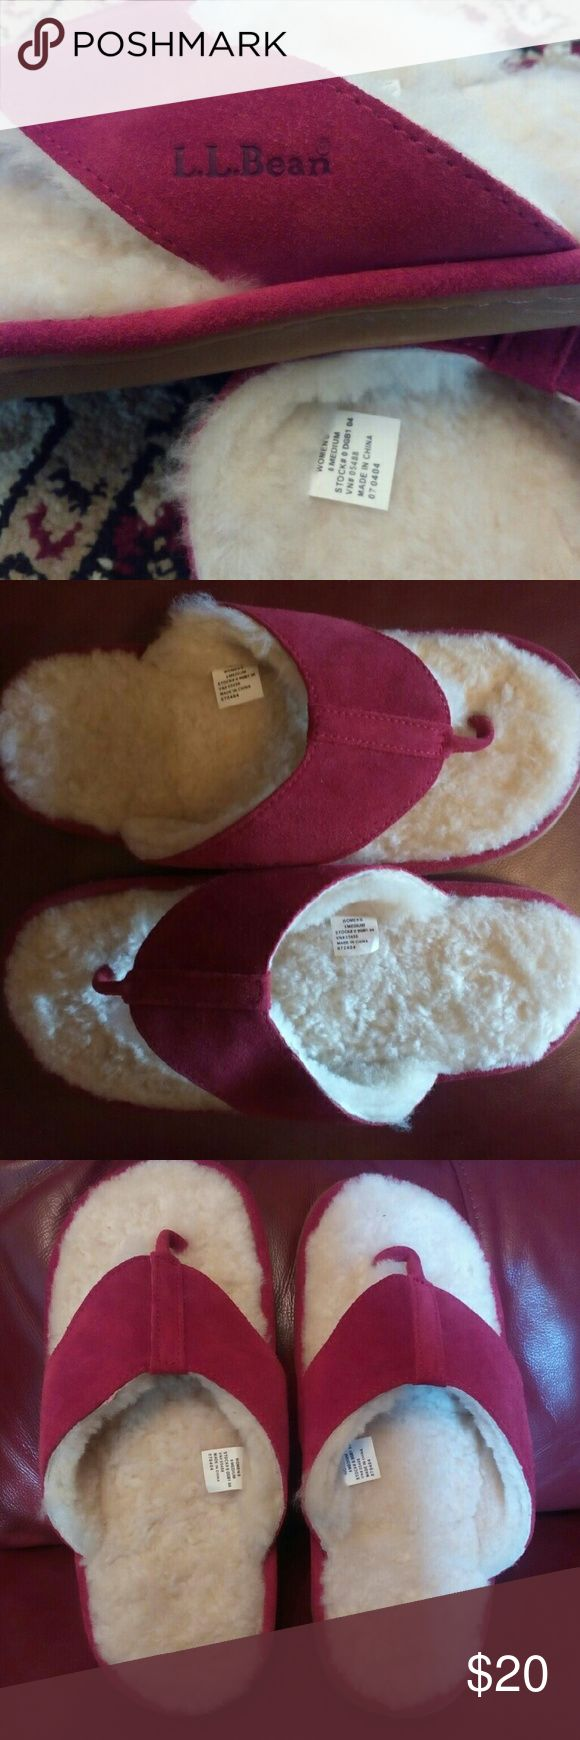 L.L Bean Wicked flip flop slippers Your soles will be wrapped in soft coziness while not being too warm! Highly recommend if you want a super comfortable summer slippers! Not worn. Only tried once L.L. Bean Shoes Slippers